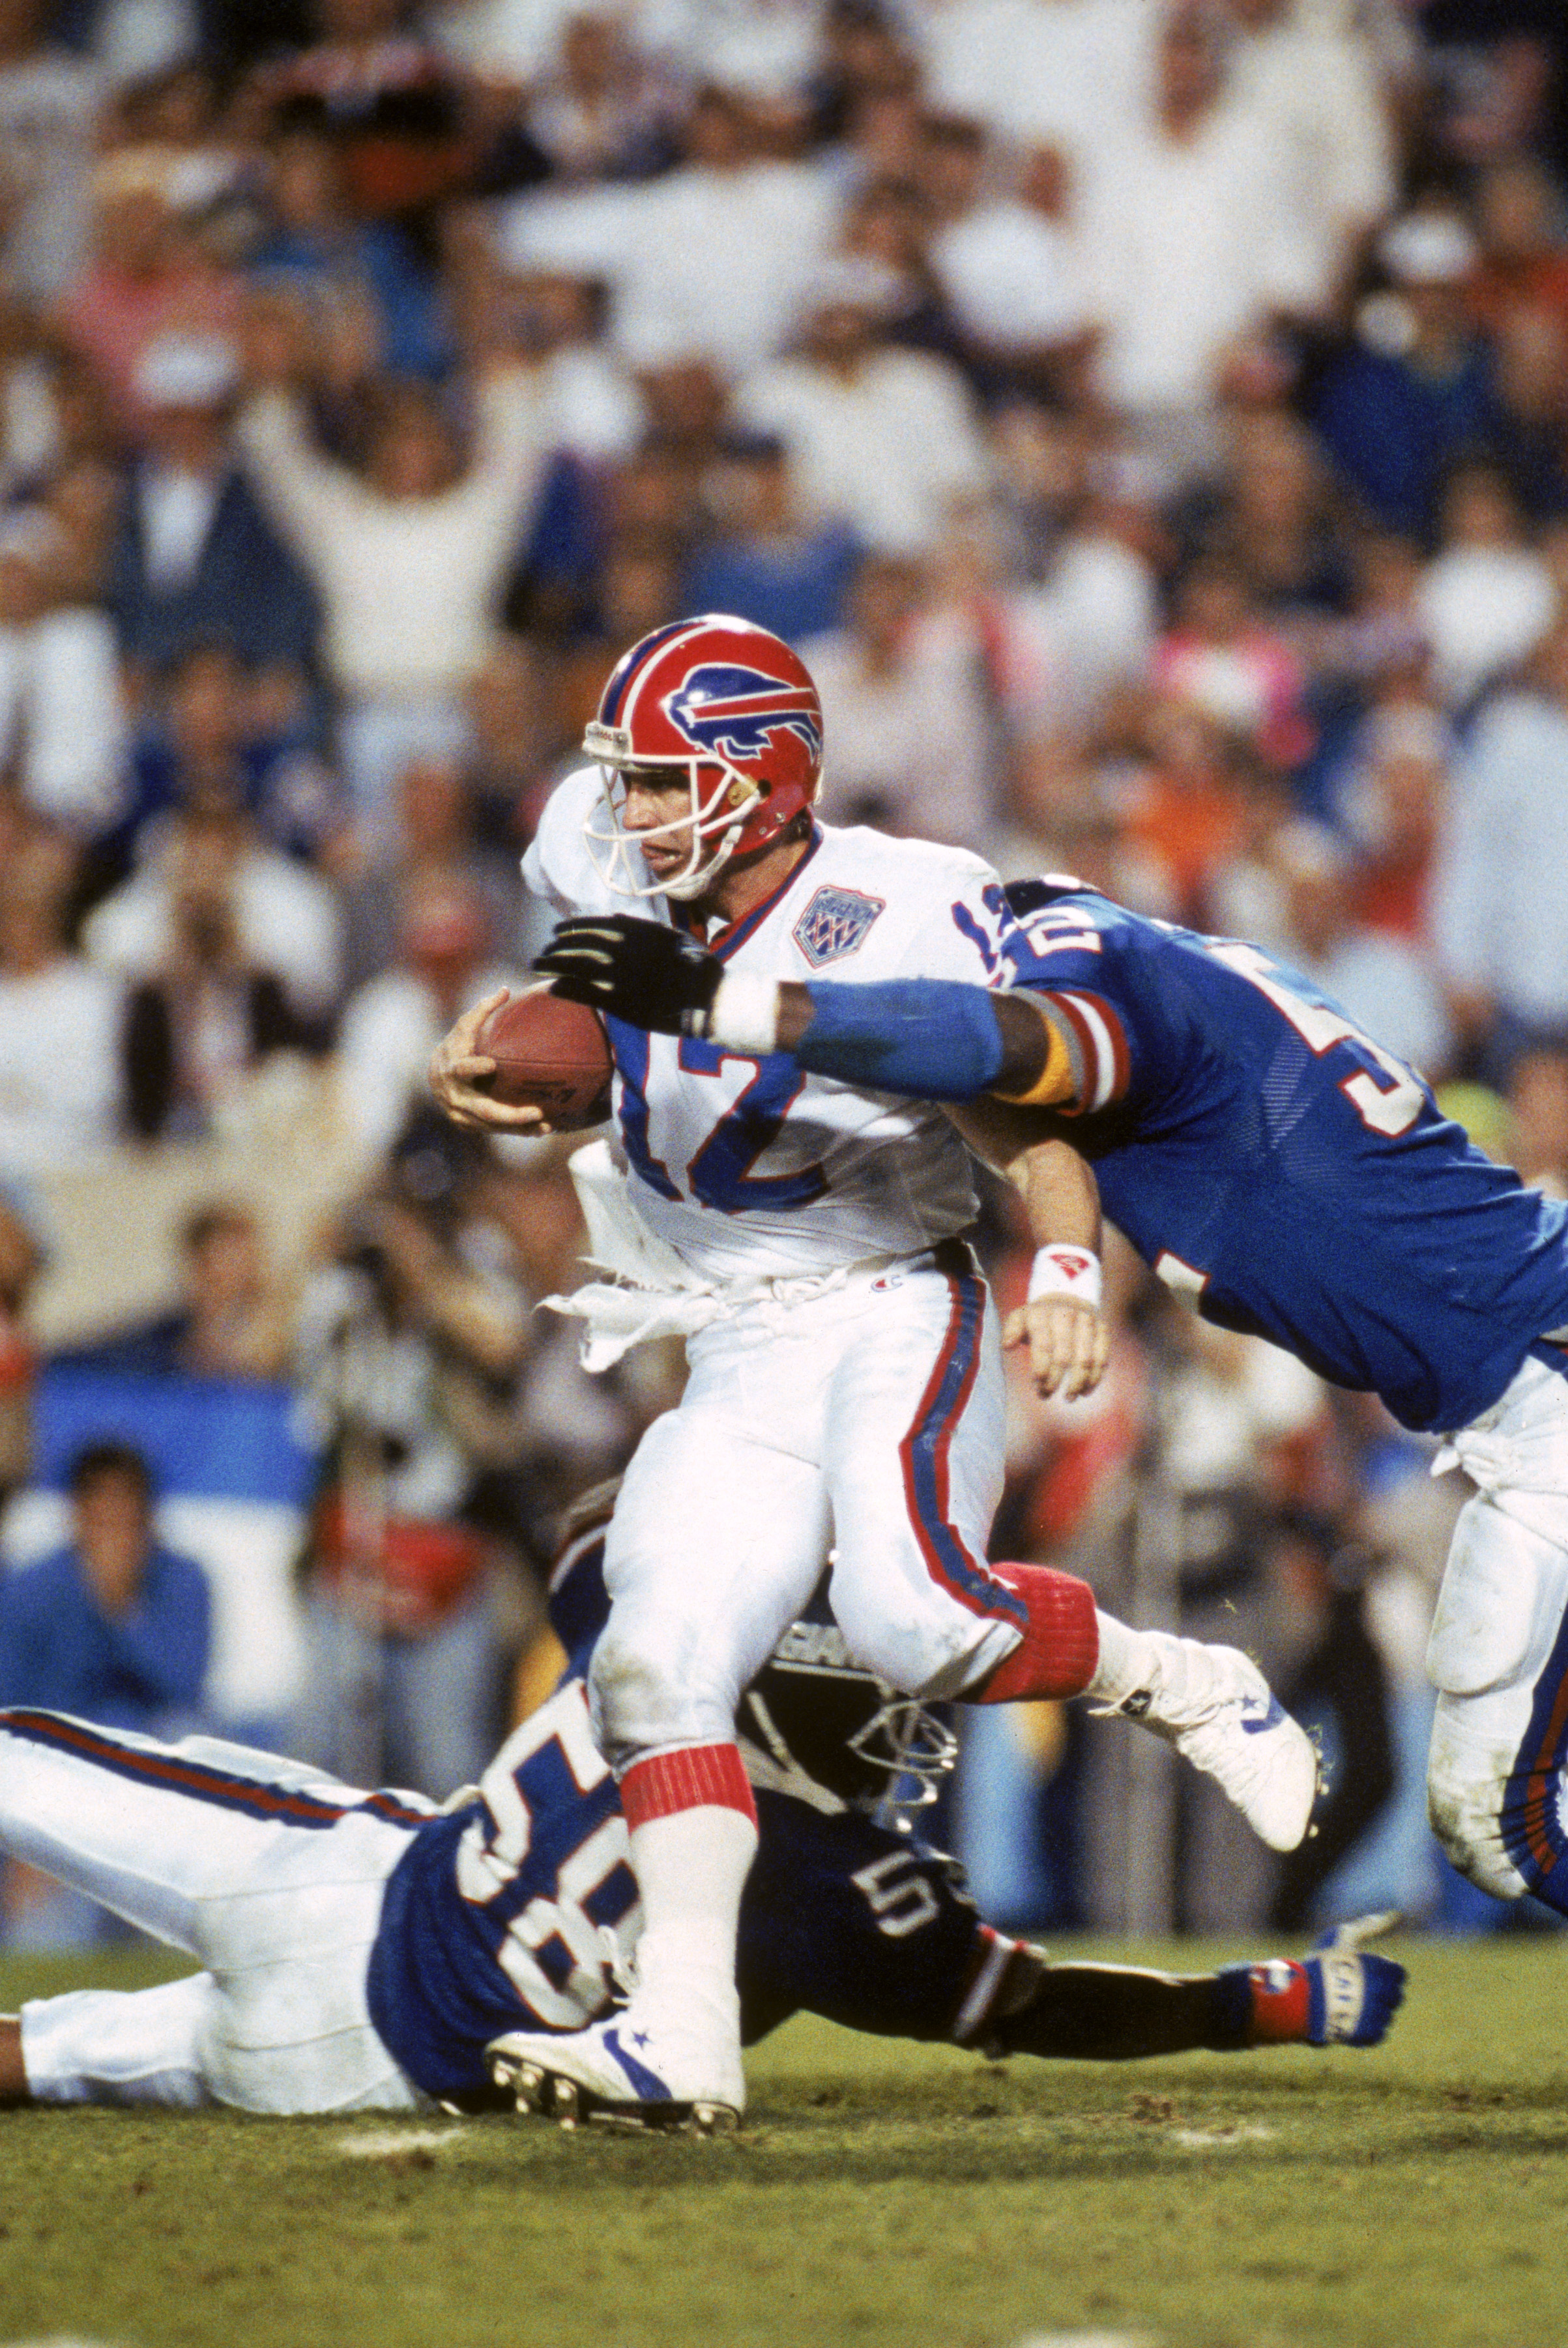 TAMPA, FL - JANUARY 27:  Linebacker Pepper Johnson #52 of the New York Giants tackles quarterback Jim Kelly #12 of the Buffalo Bills from behinds after an eight yard run in the fourth quarter of Super Bowl XXV at Tampa Stadium on January 27, 1991 in Tampa